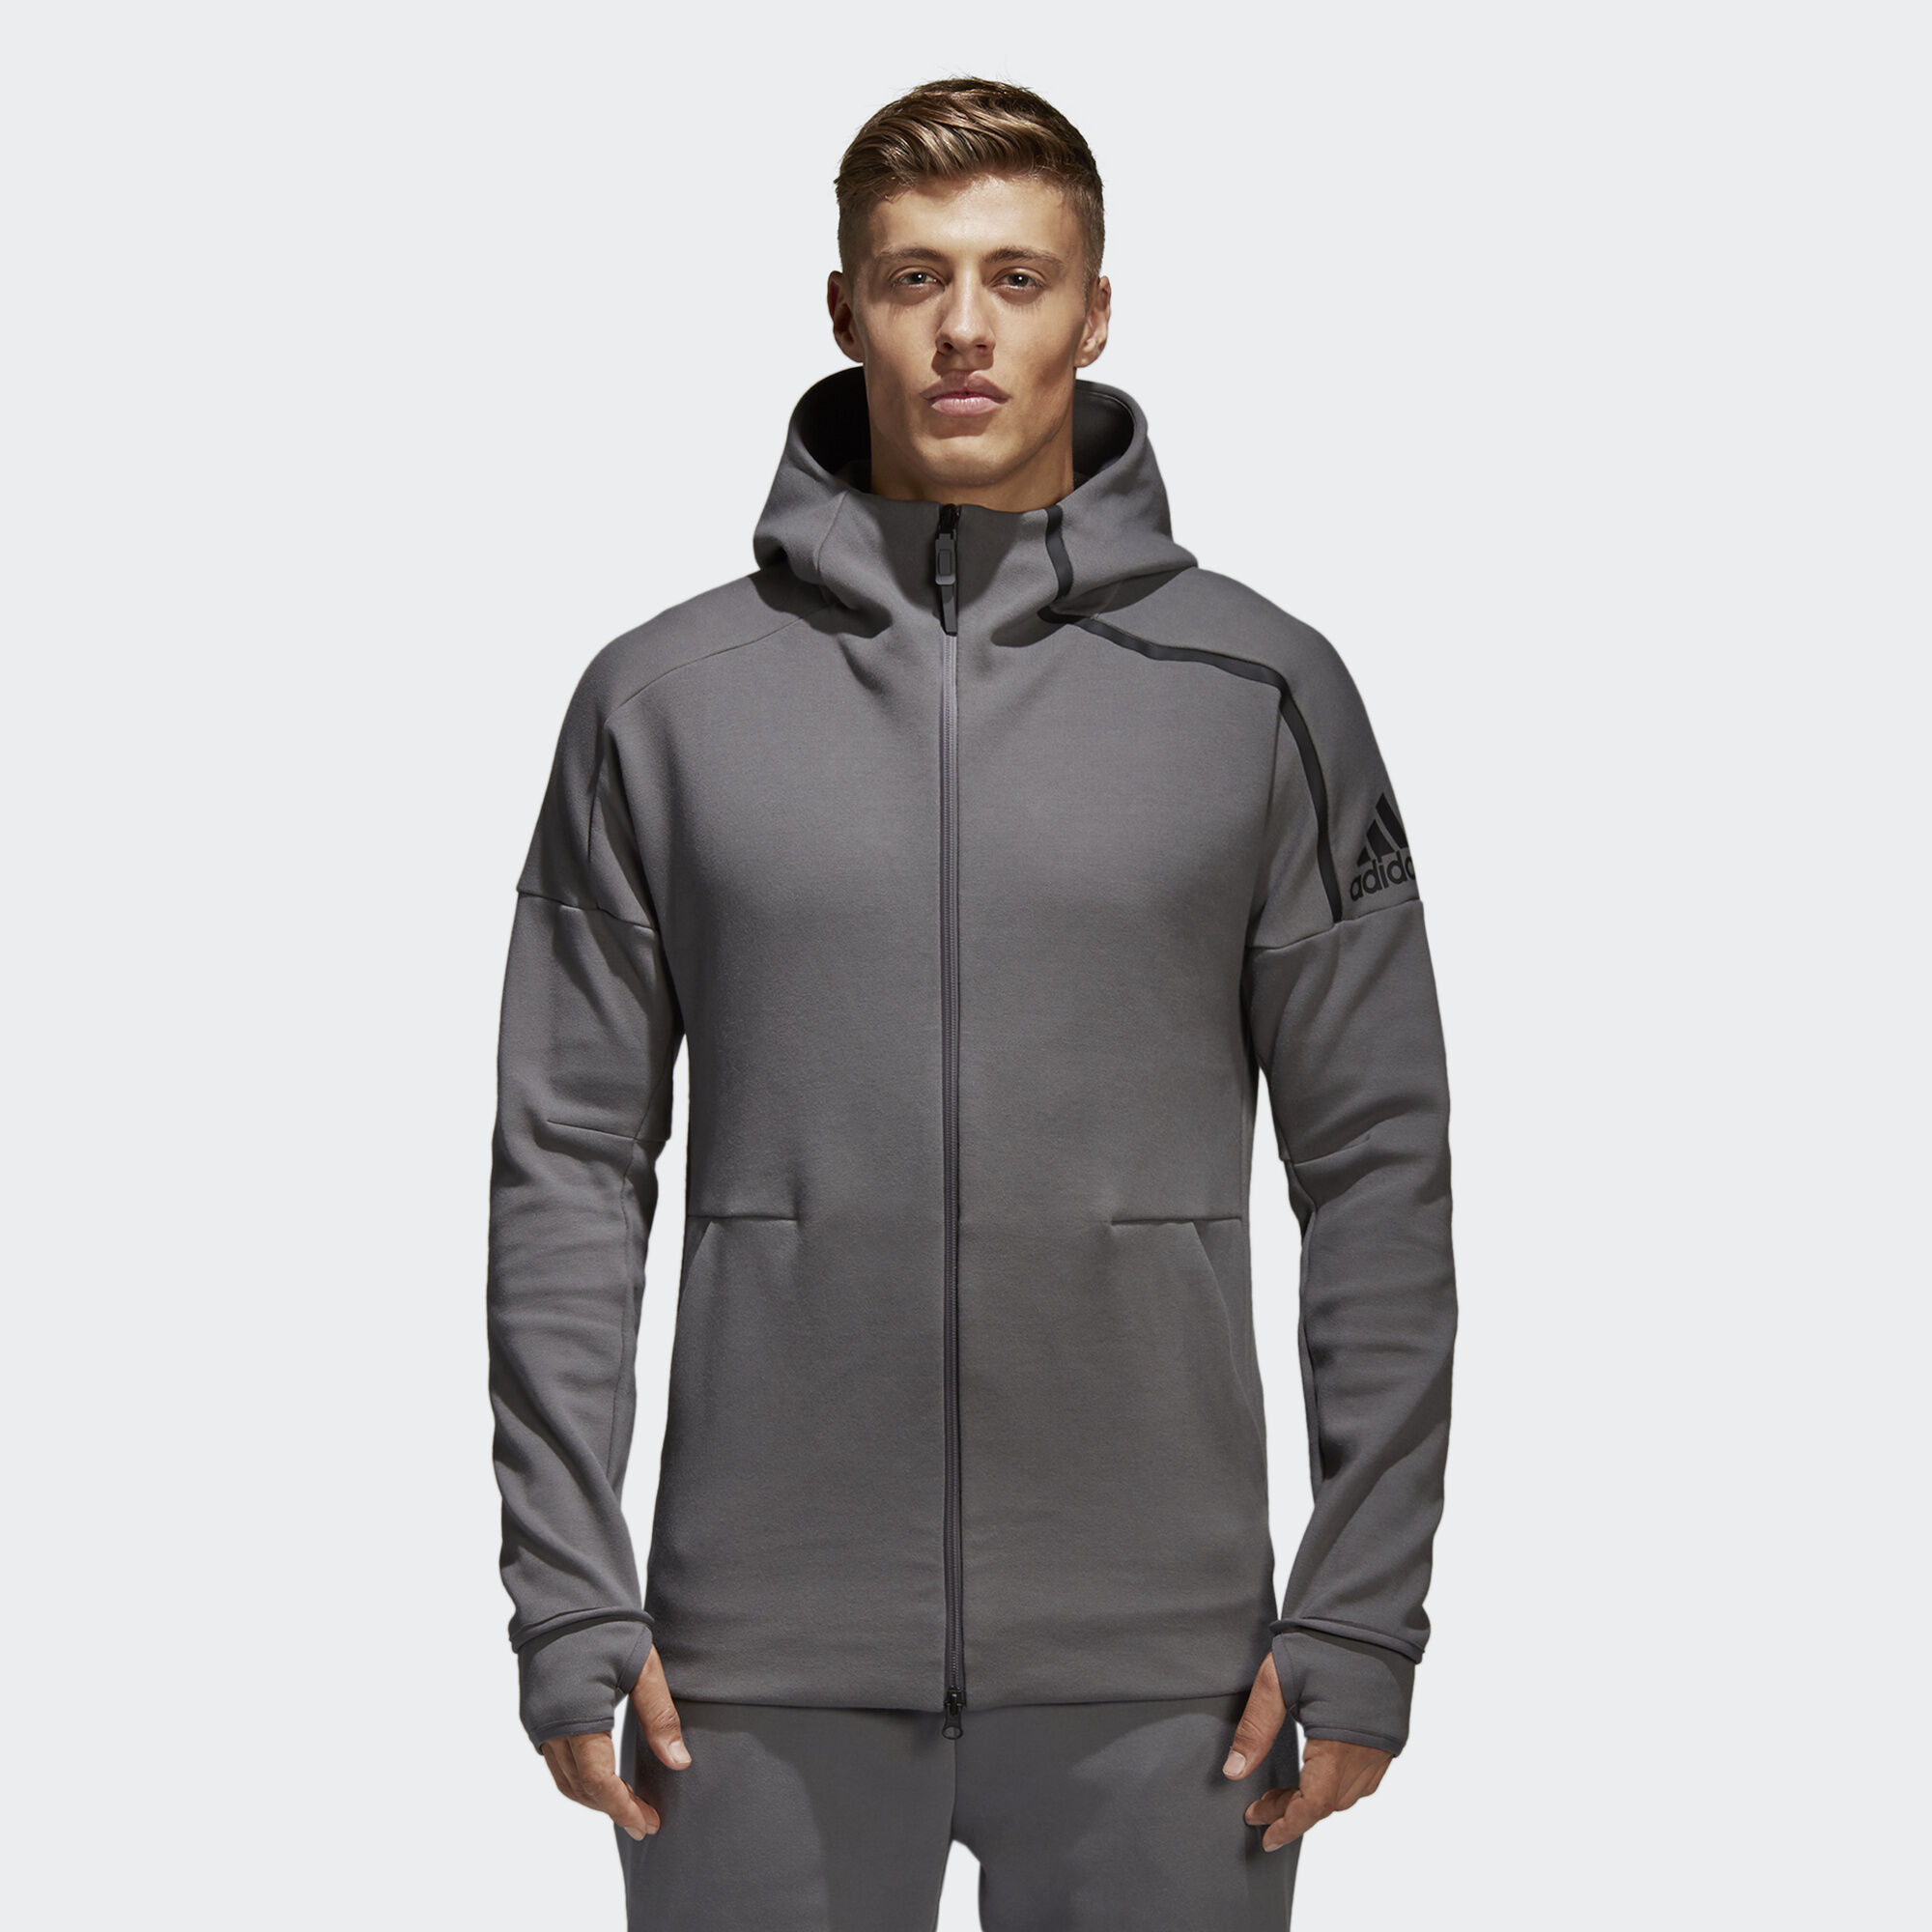 adidas - adidas Z.N.E. Hoodie 2 Grey Four CE4260. Men Athletics